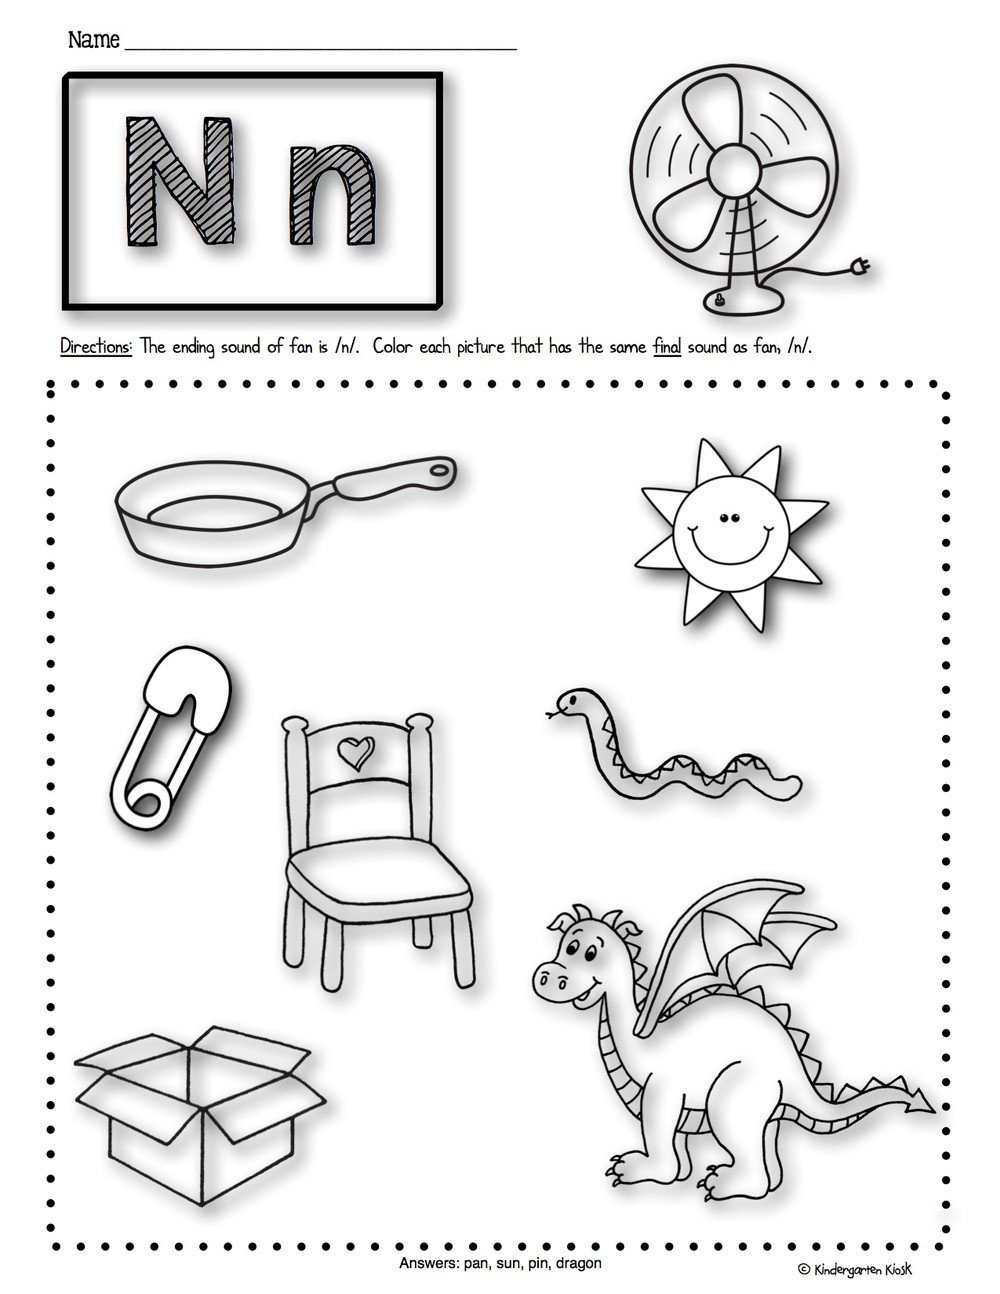 L Blends Worksheets for Kindergarten Math Worksheet Phonics Prep Ending sounds Worksheets